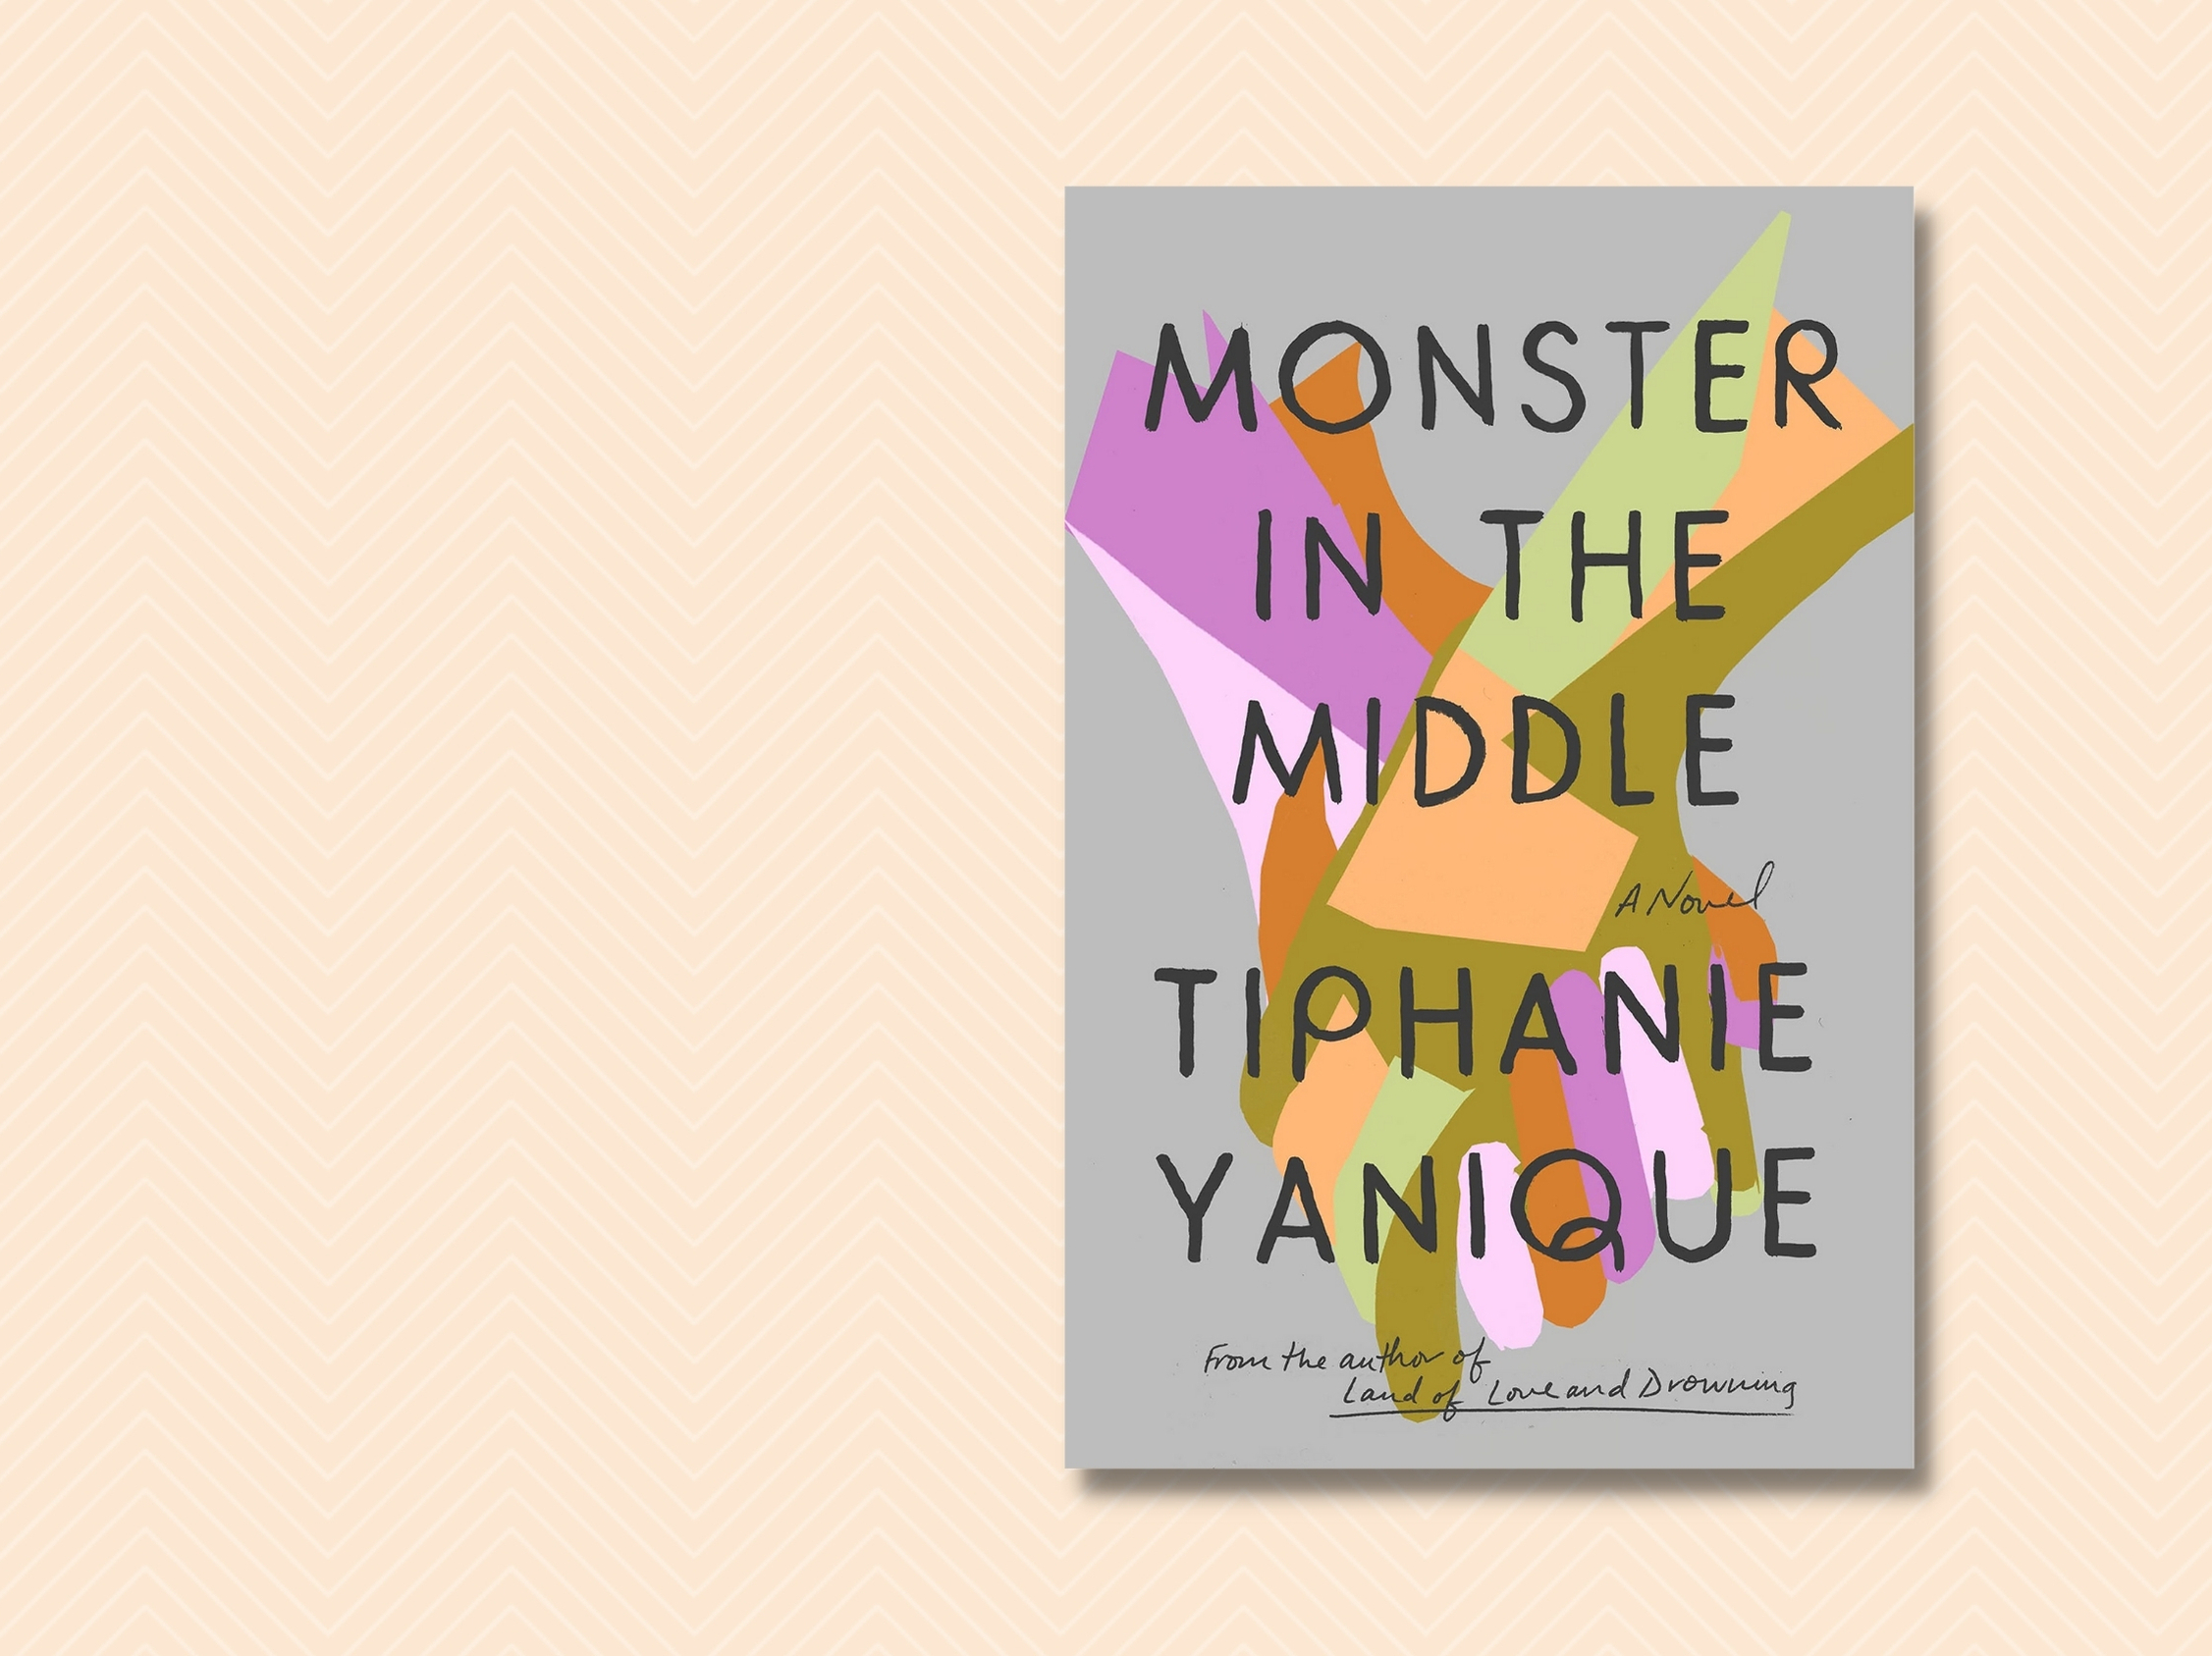 'Monster in the Middle' muses on the complex nature of romantic love